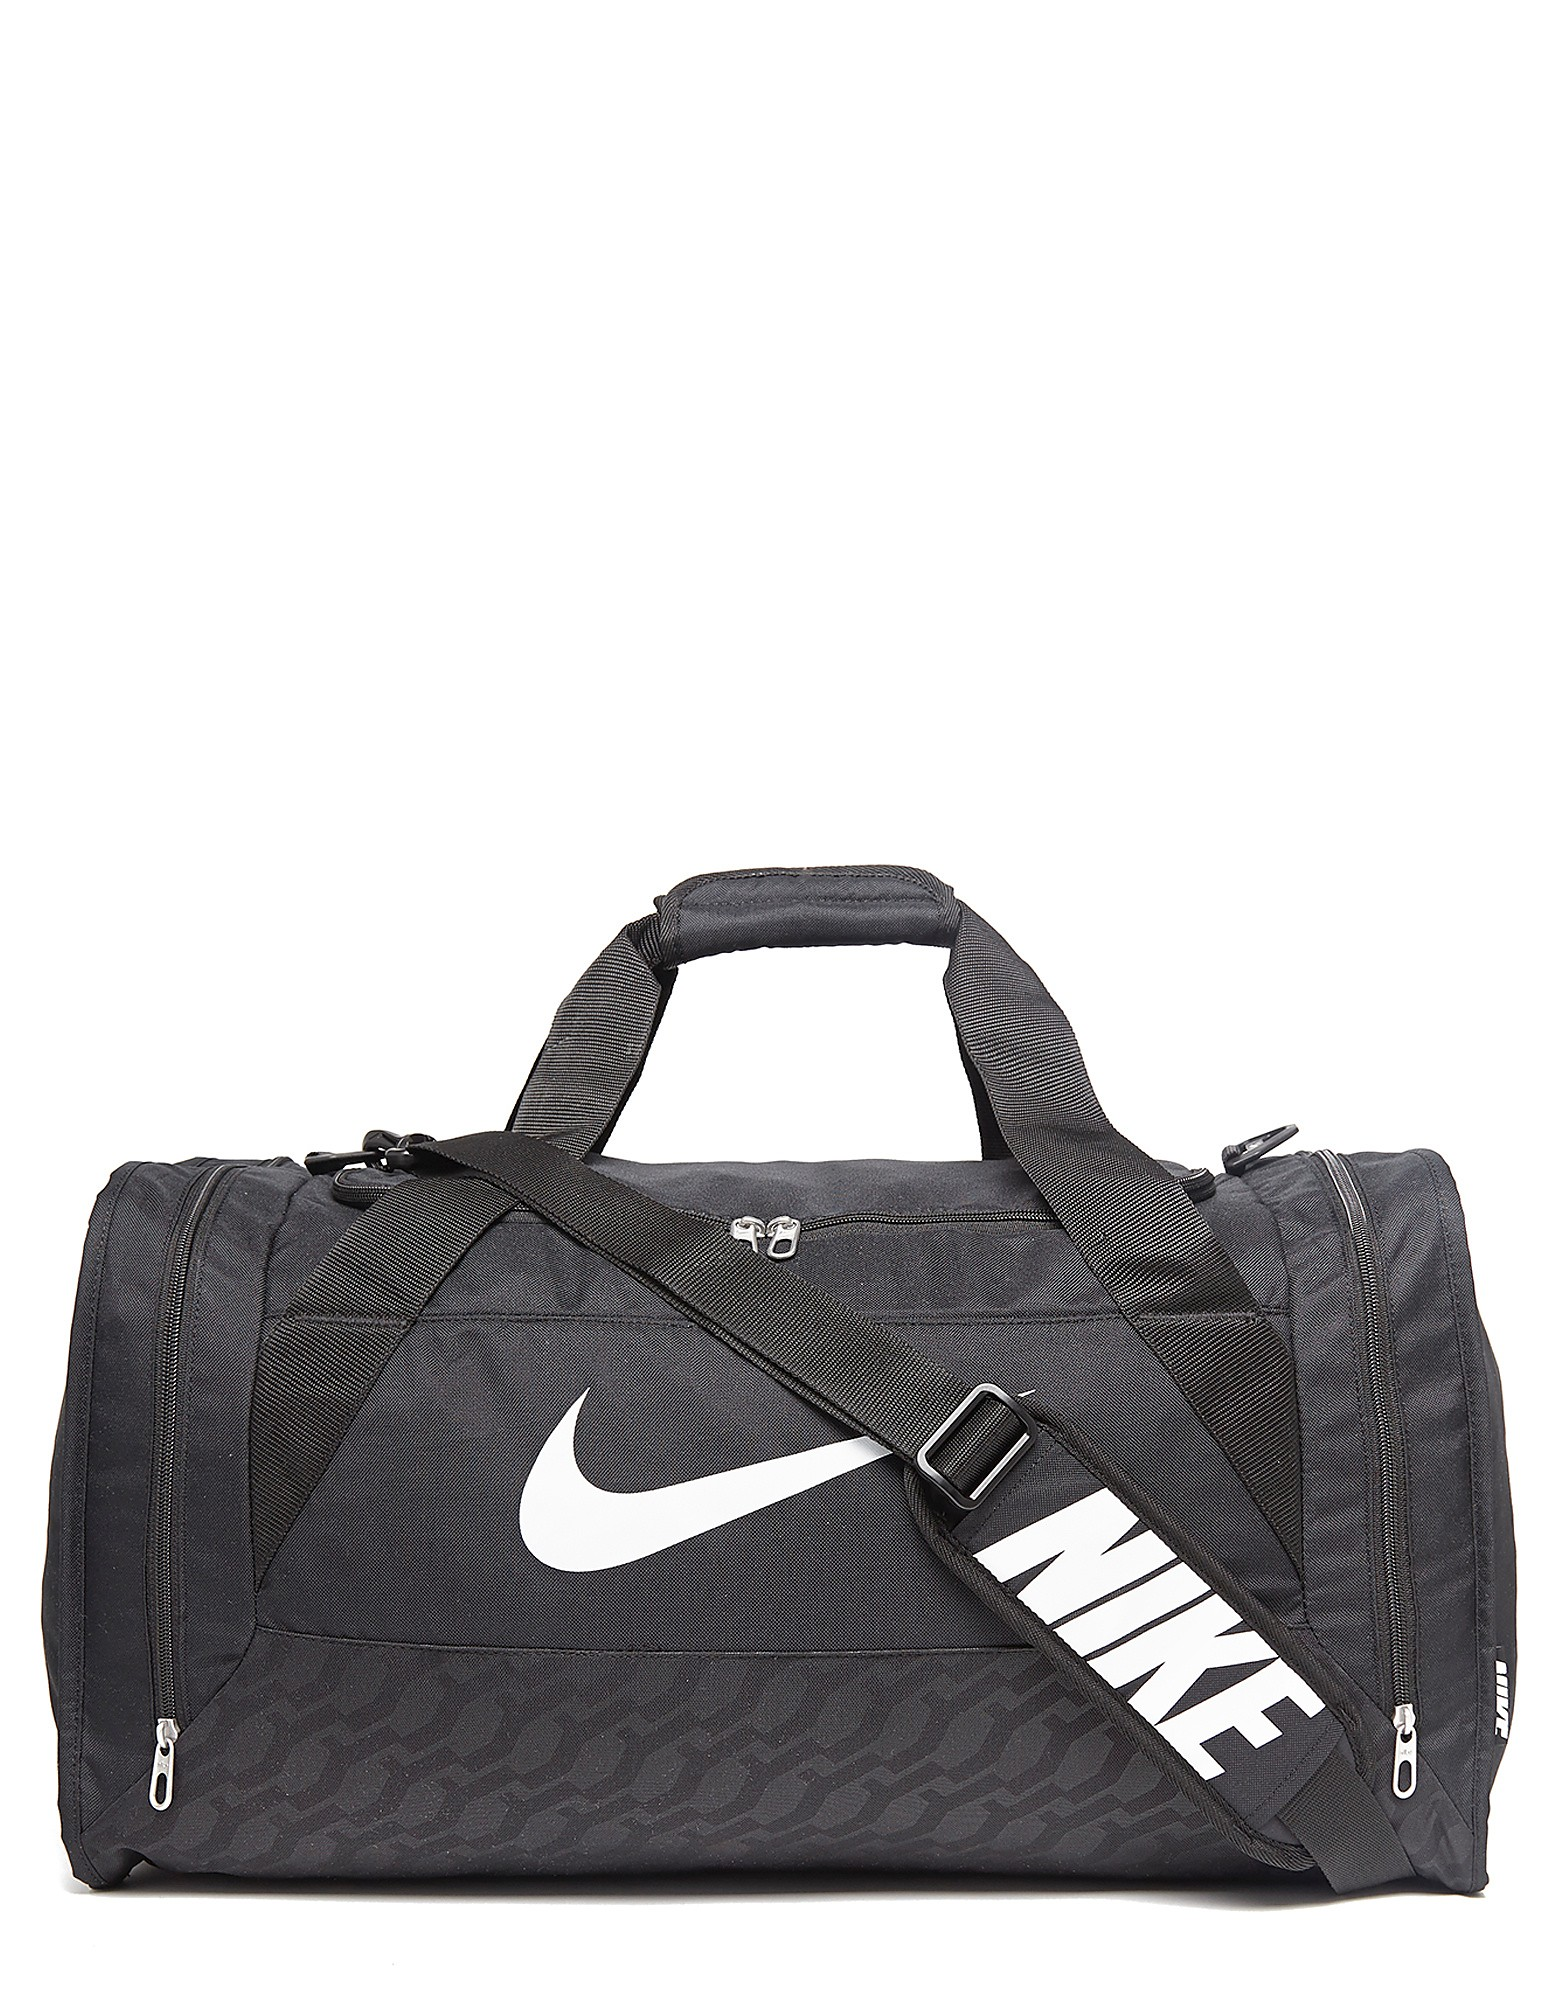 Nike Brasilia 6 Medium Duffel Bag Black Mens